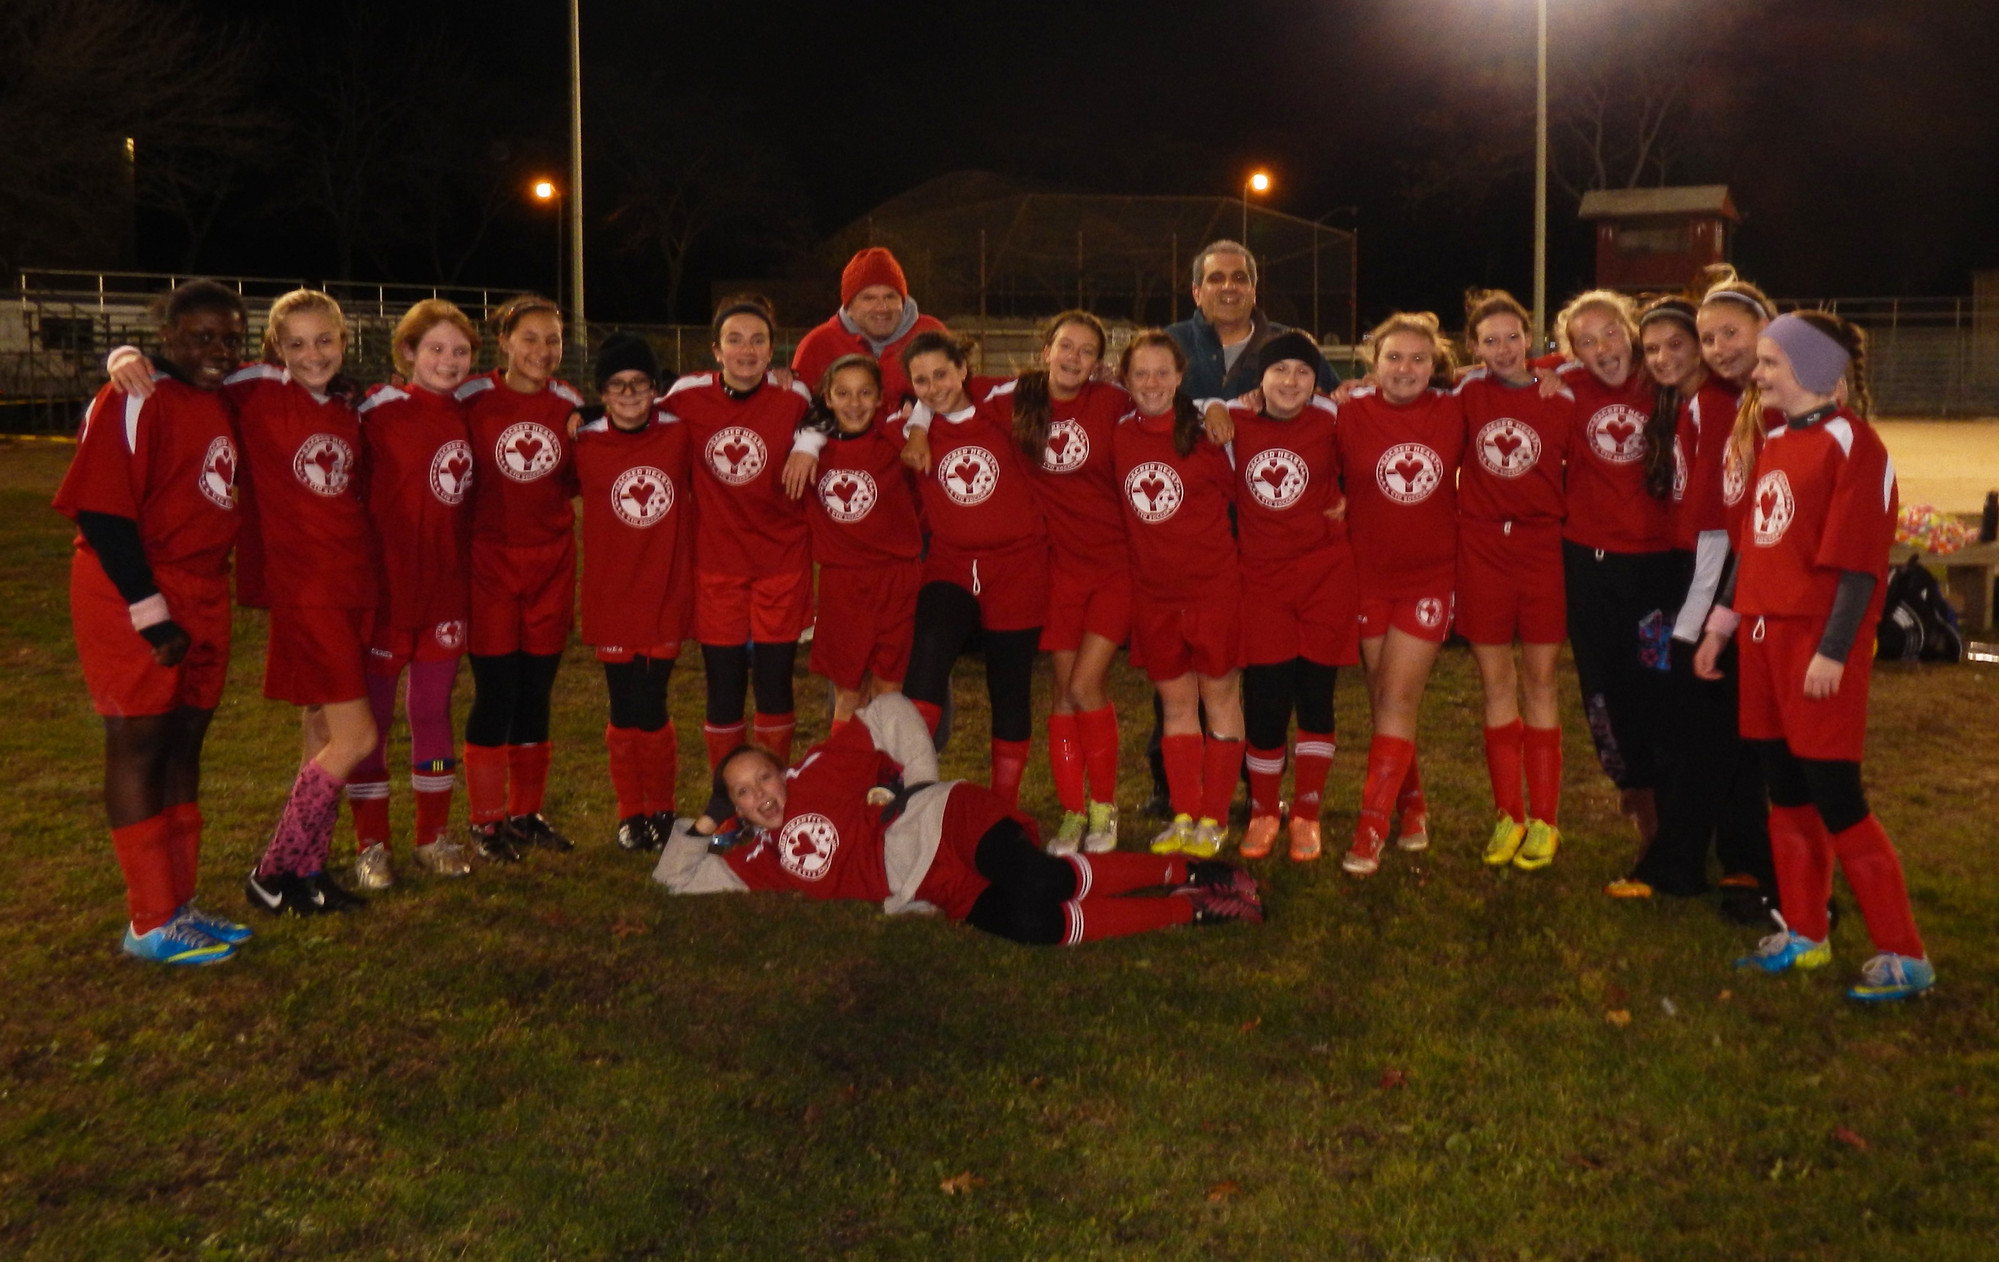 The Sacred Heart seventh- and eighth-grade girls' soccer team was the runner-up for the 2013 Nassau County Championship title. The squad ended the regular season undefeated and in first place before falling to St. Dominic's of Oyster Bay in the championship game 2-1 on Sunday.